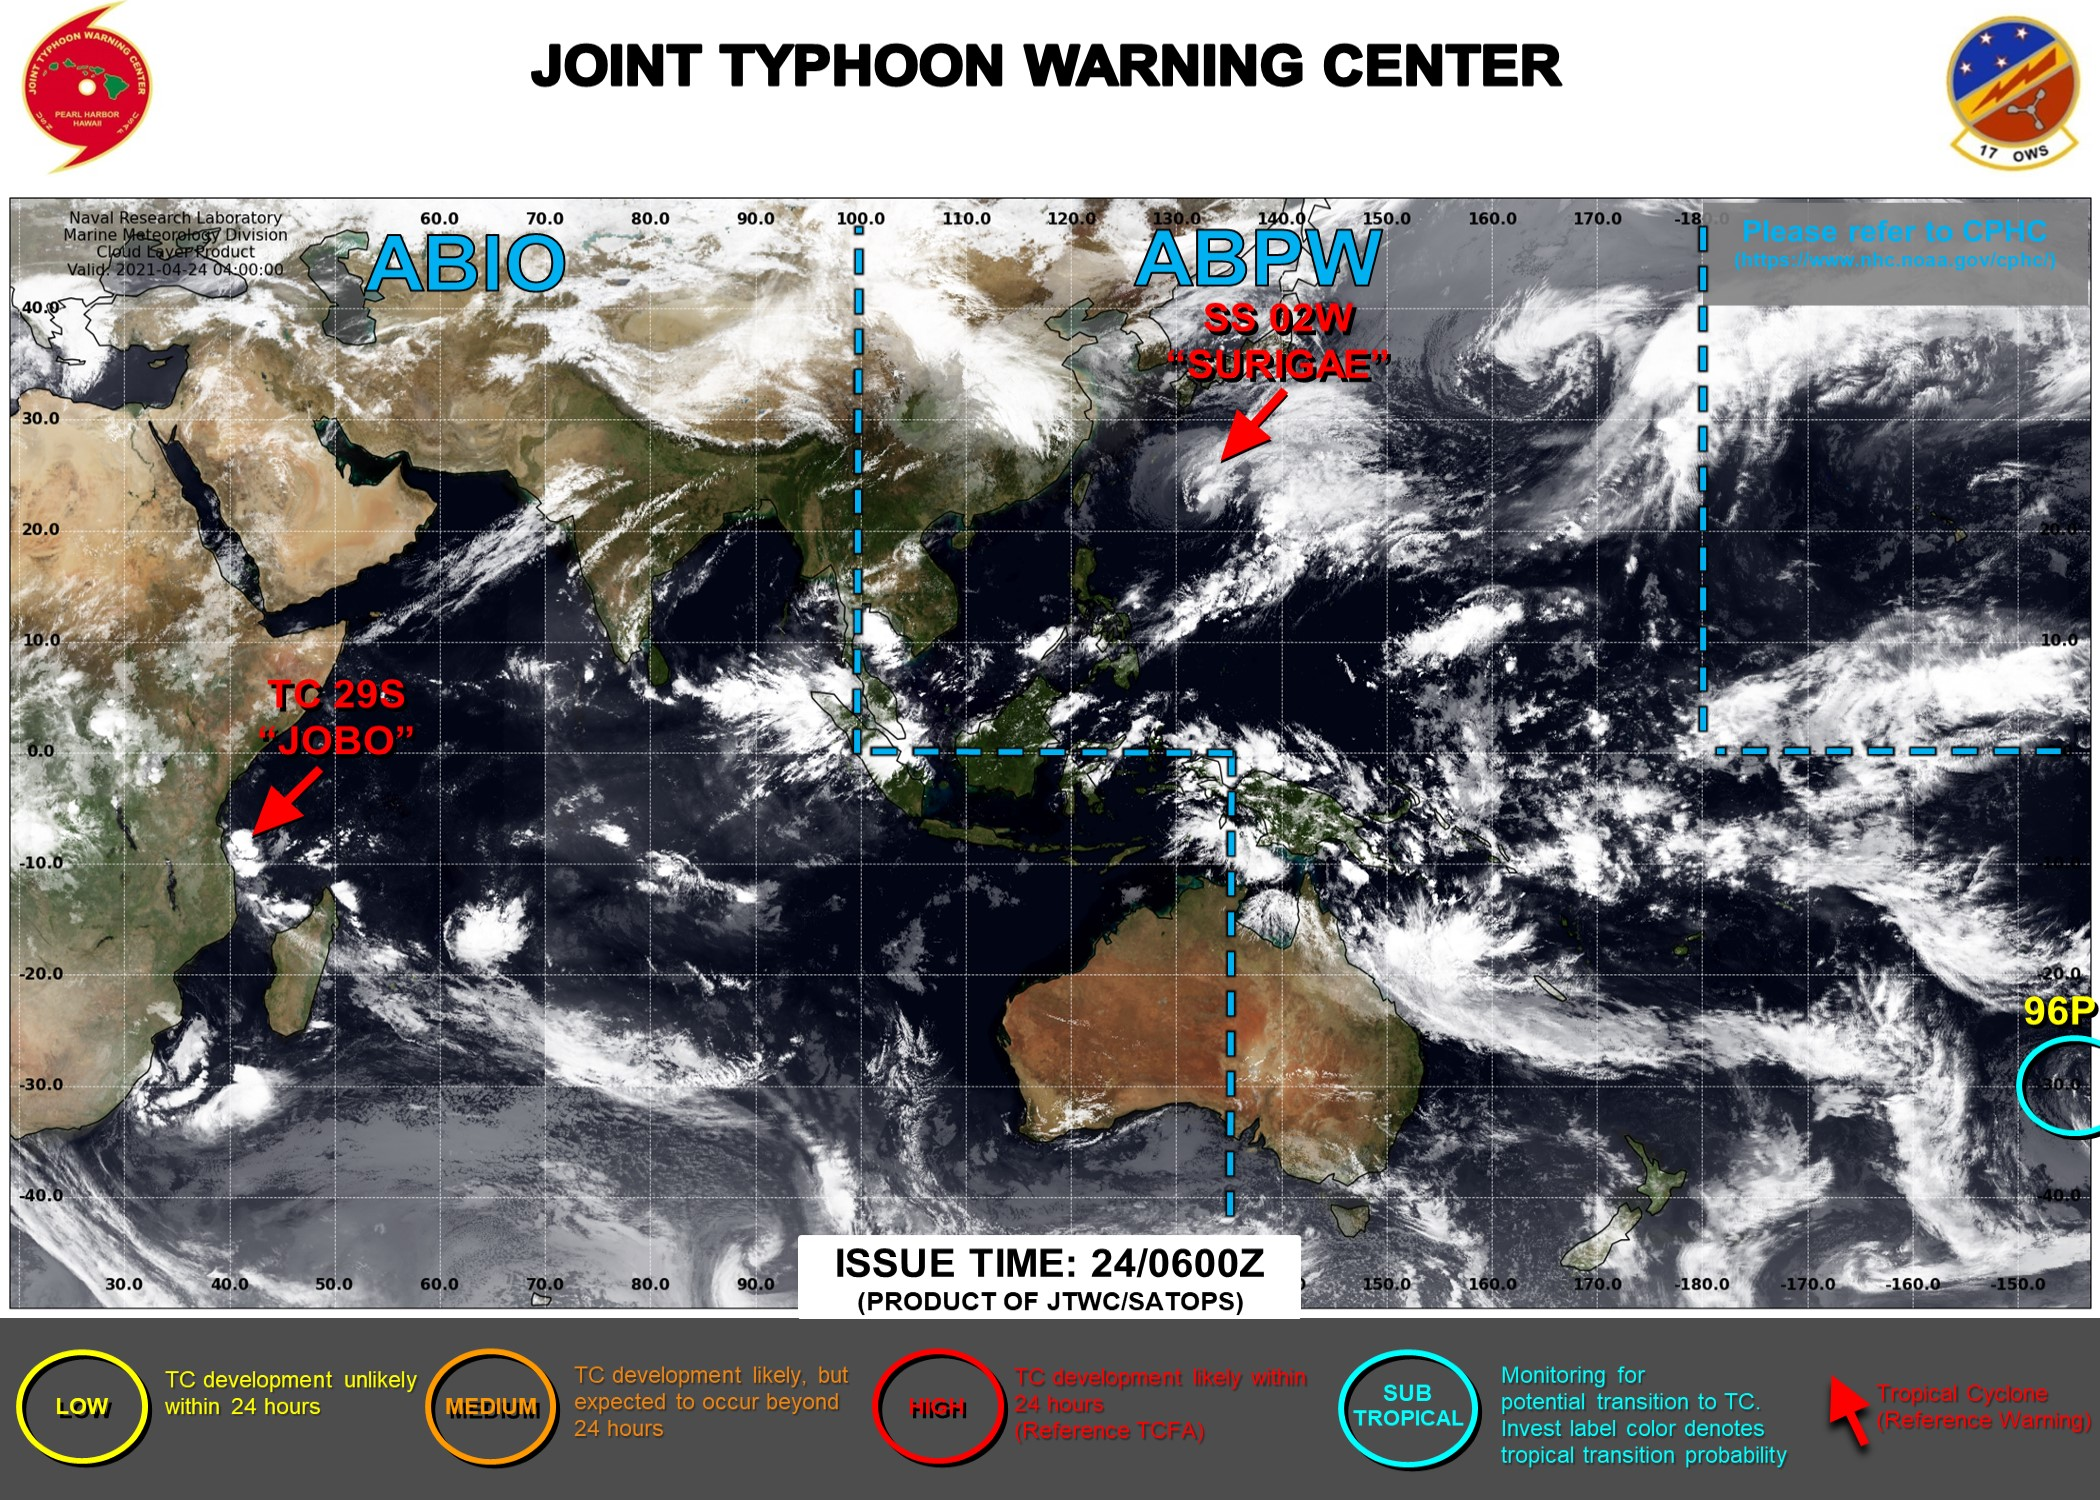 24/06UTC. THE JTWC IS ISSUING 6HOURLY WARNINGS ON 02W(SURIGAE) AND 12HOURLY WARNINGS ON 29S(JOBO). 3HOURLY SATELLITE BULLETINS ARE ISSUED FOR BOTH SYSTEMS. INVEST 96P(35KNOT SUSTAINED WINDS) IS ANALYZED AS A SUBTROPICAL SYSTEM HAVING LOW CHANCES OF TRANSITIONING INTO A TROPICAL SYSTEM.